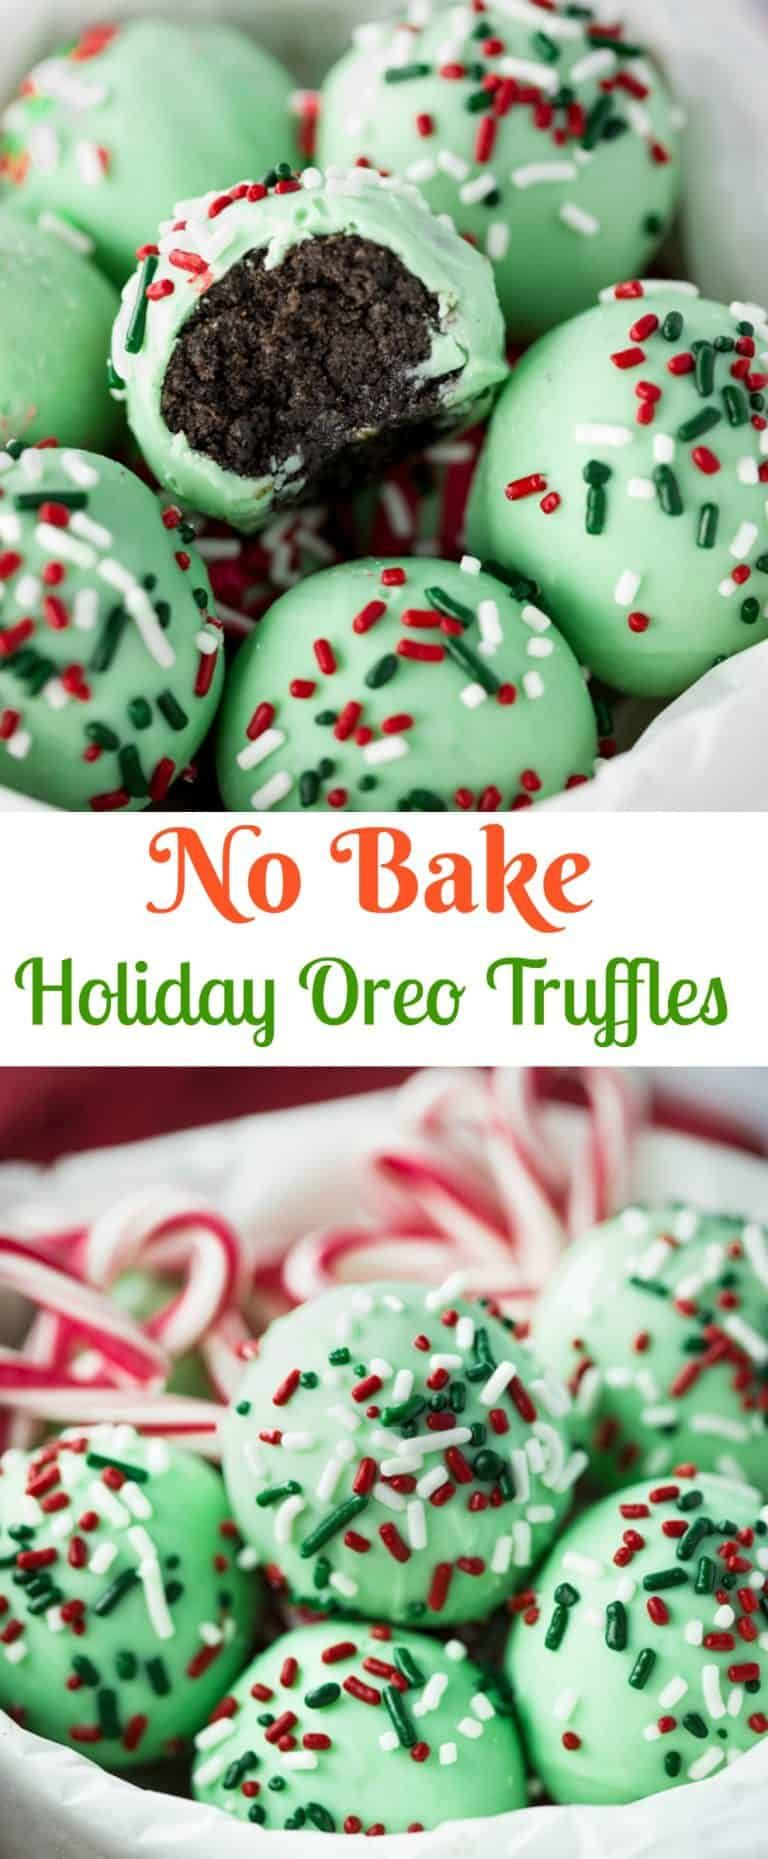 A sweet outer chocolate shell surrounds a decadent, chocolate Oreo filling. No baking necessary and only 5 ingredients needed! | The Cozy Cook |  christmas  oreos  chocolate  truffles  dessert  holidays  sprinkles  oreotruffles